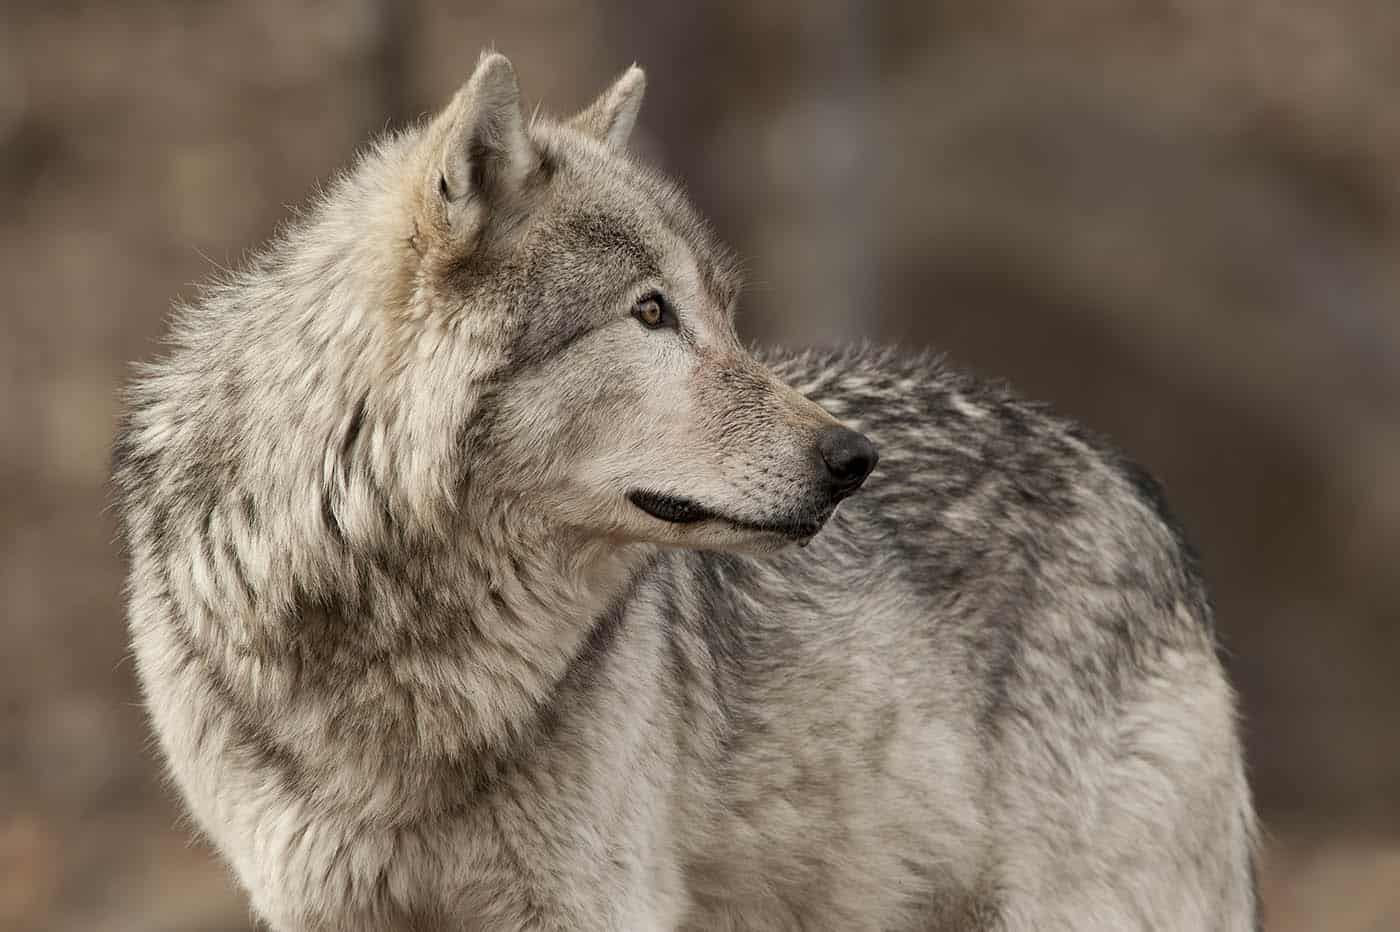 Adult Timber wolf in that classic over the shoulder pose.